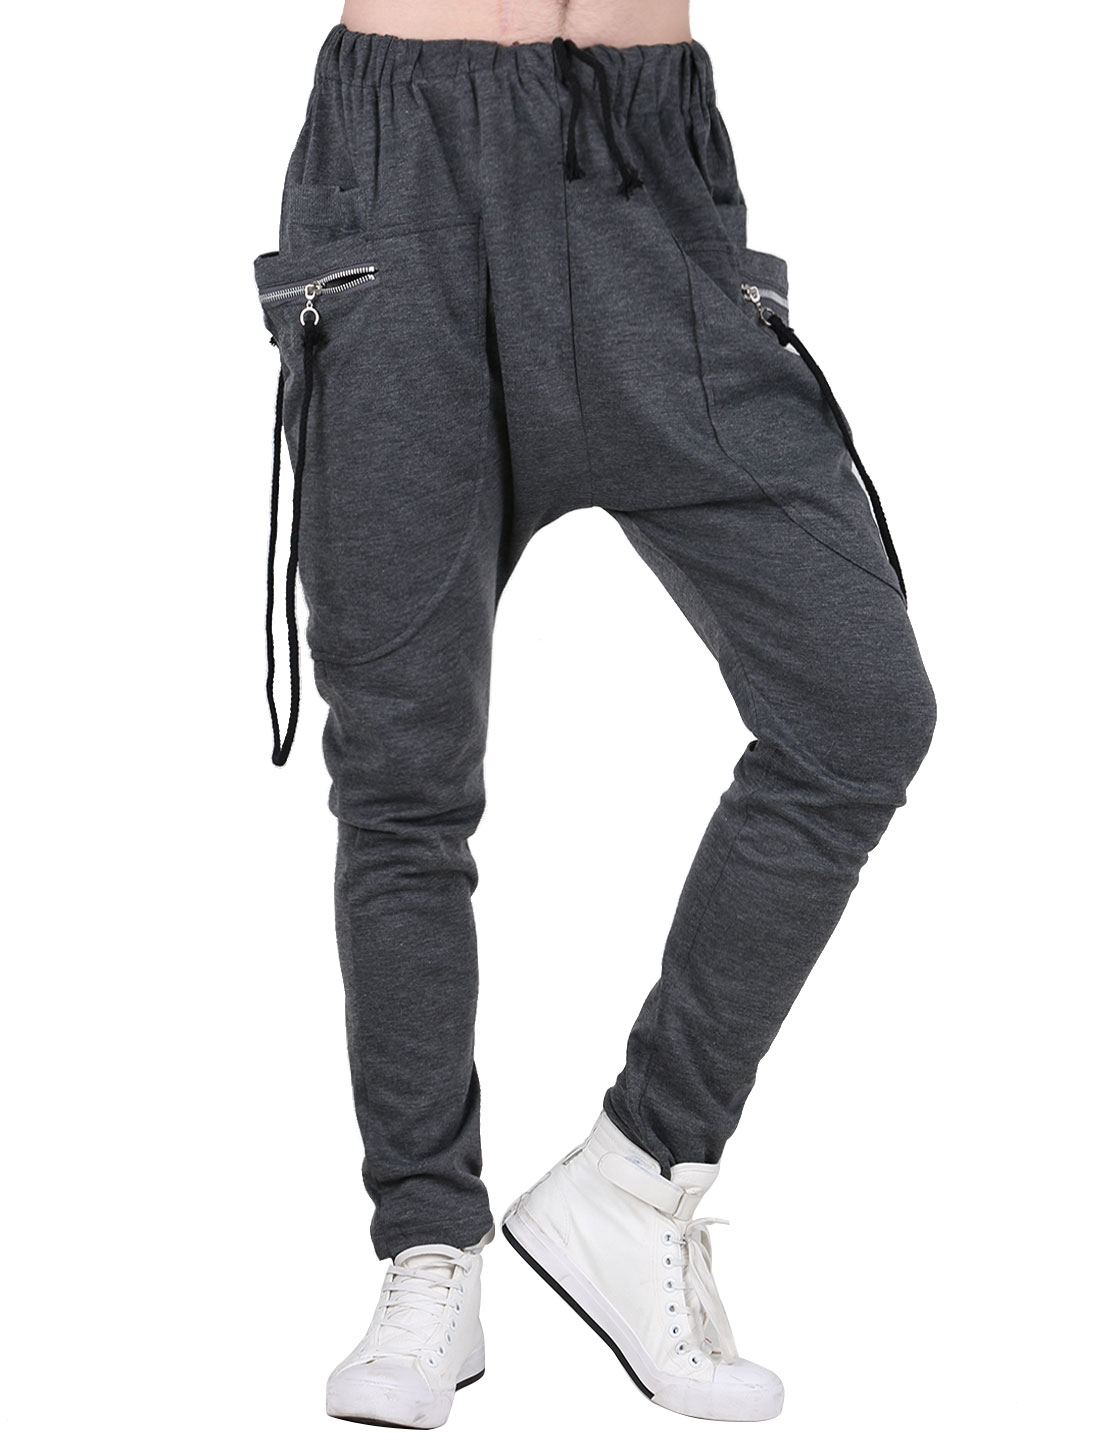 Men New Style Stretchy Waist Design Dark Gray Casual Pants W28/30